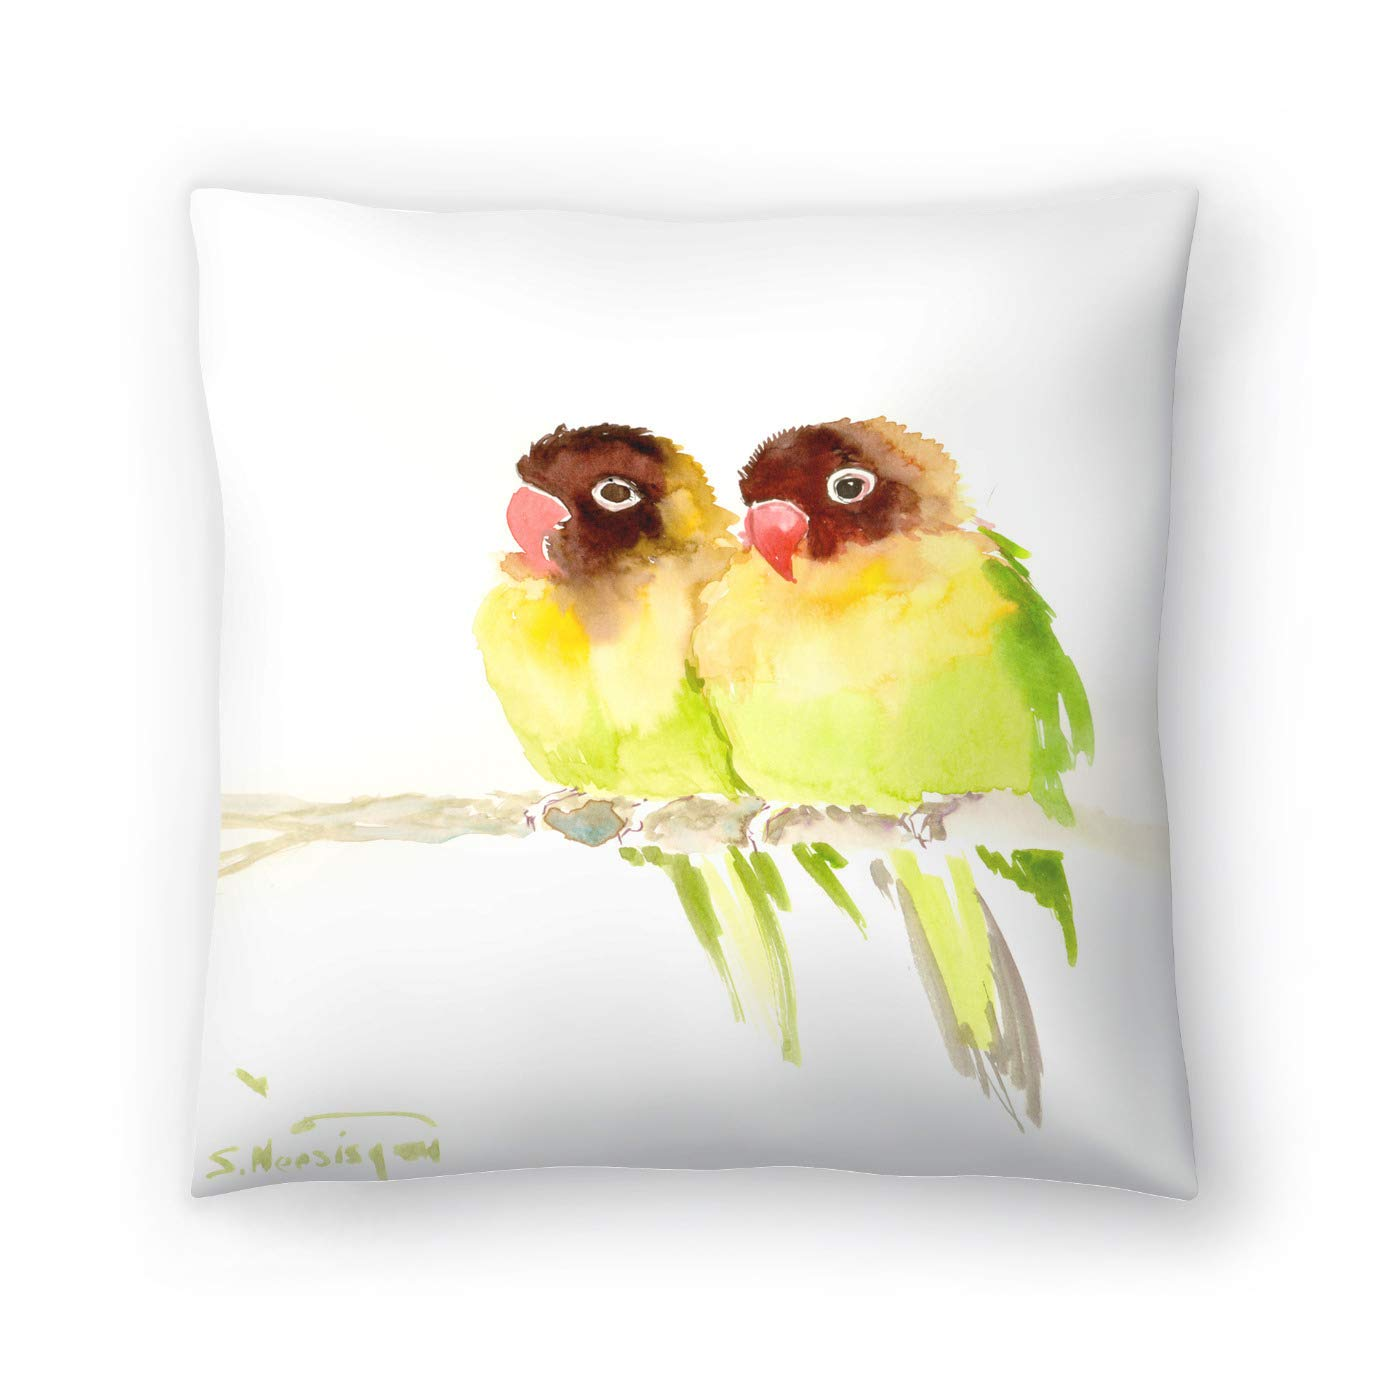 Buy American Flat Masked Lovebirds Pillow By Suren Nersisyan 16 X 16 Online At Low Prices In India Amazon In